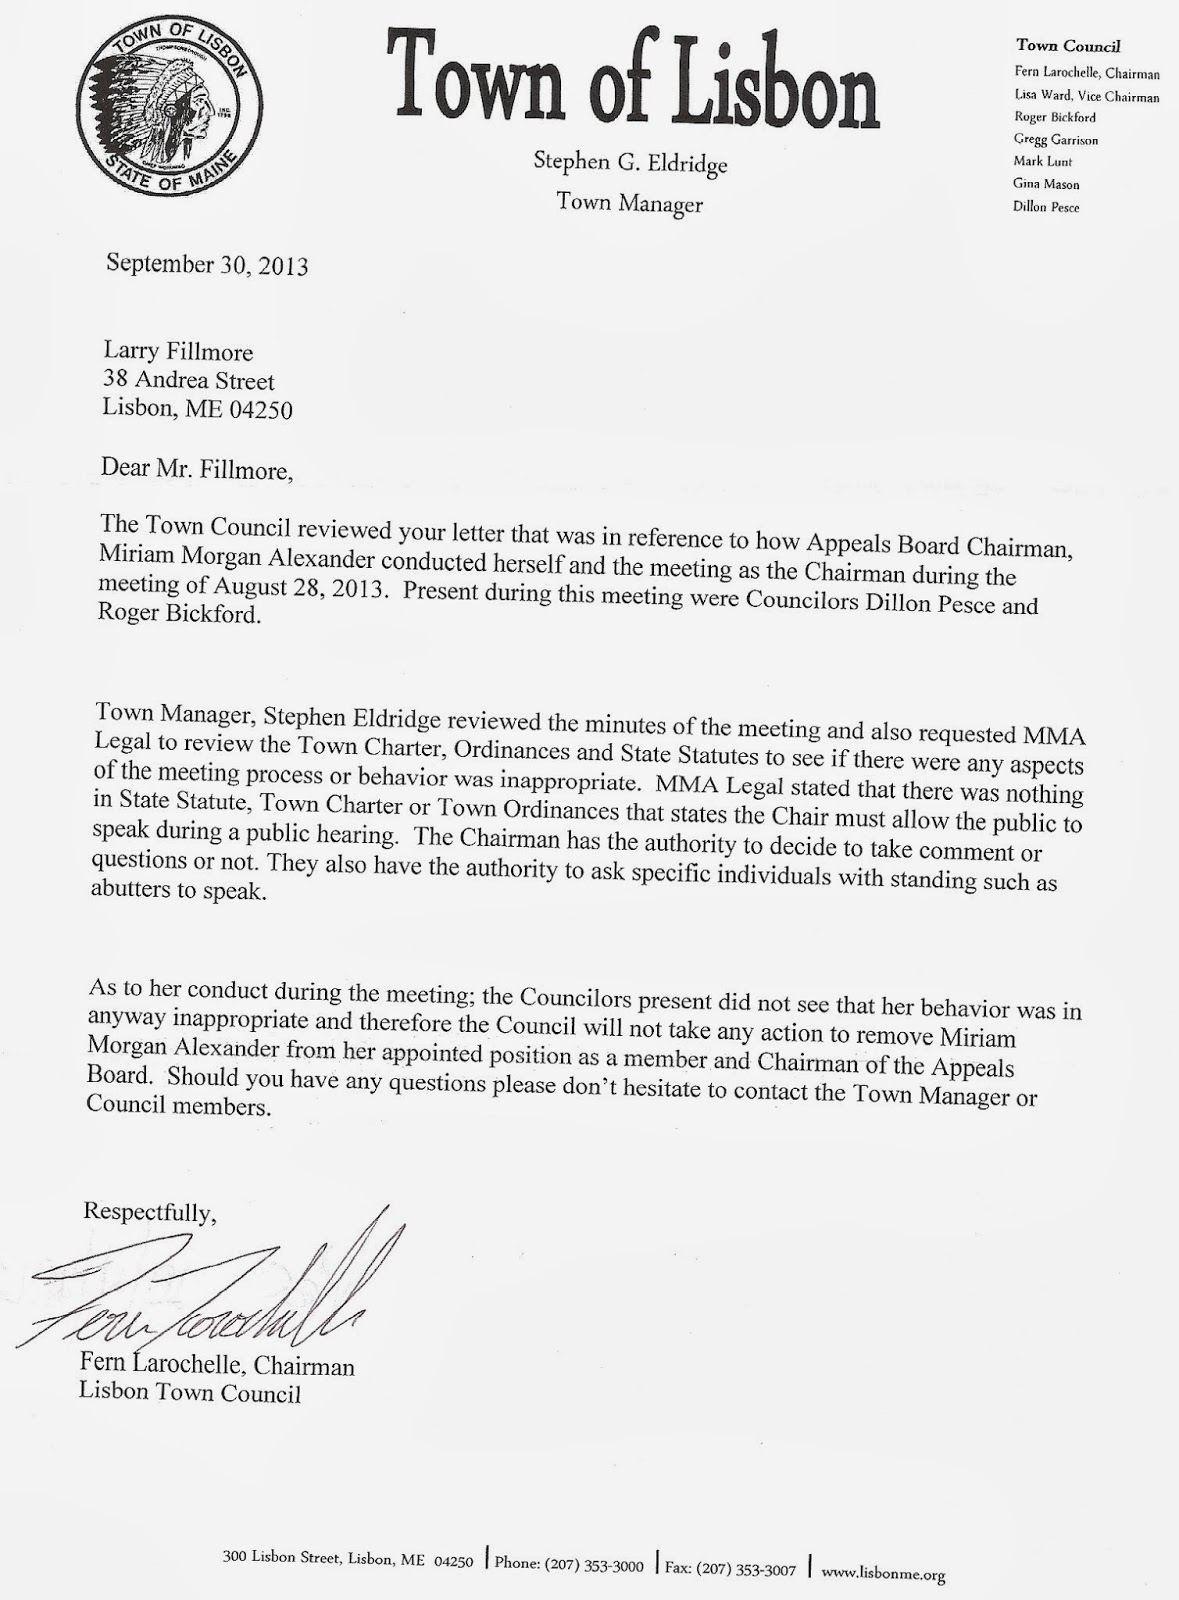 example letter of complaint to the town council the lisbon example letter of complaint to the town council the lisbon reporter public laws